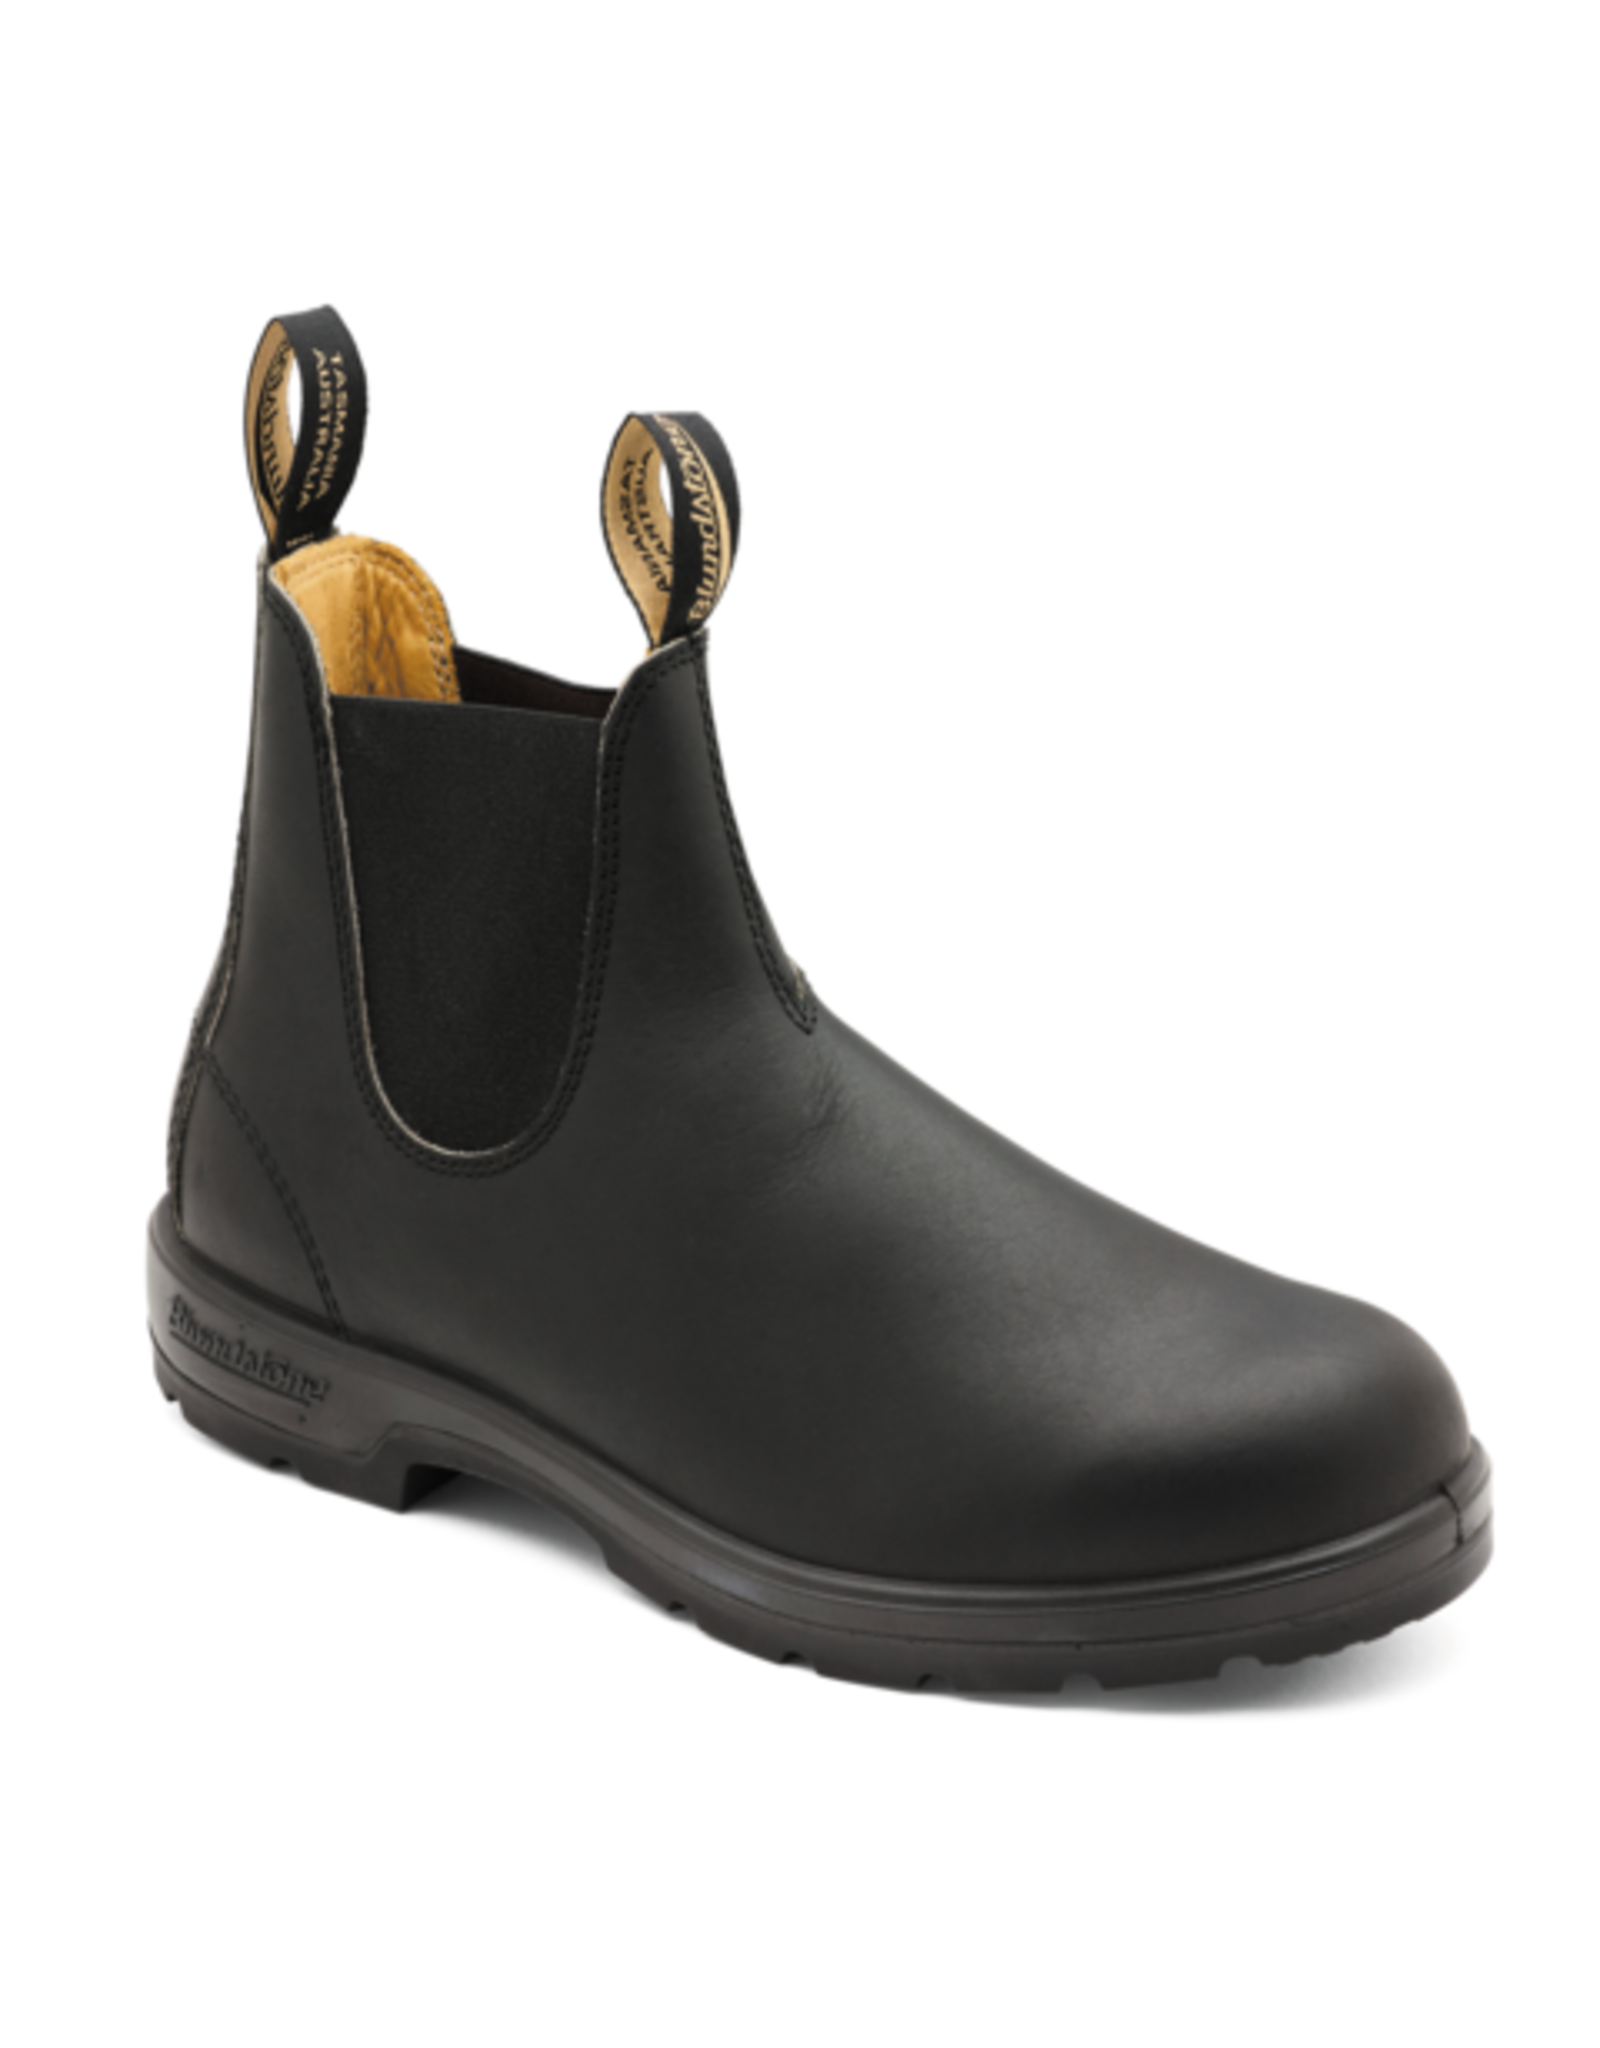 Blundstone Blundstone - Botte homme leather lined black